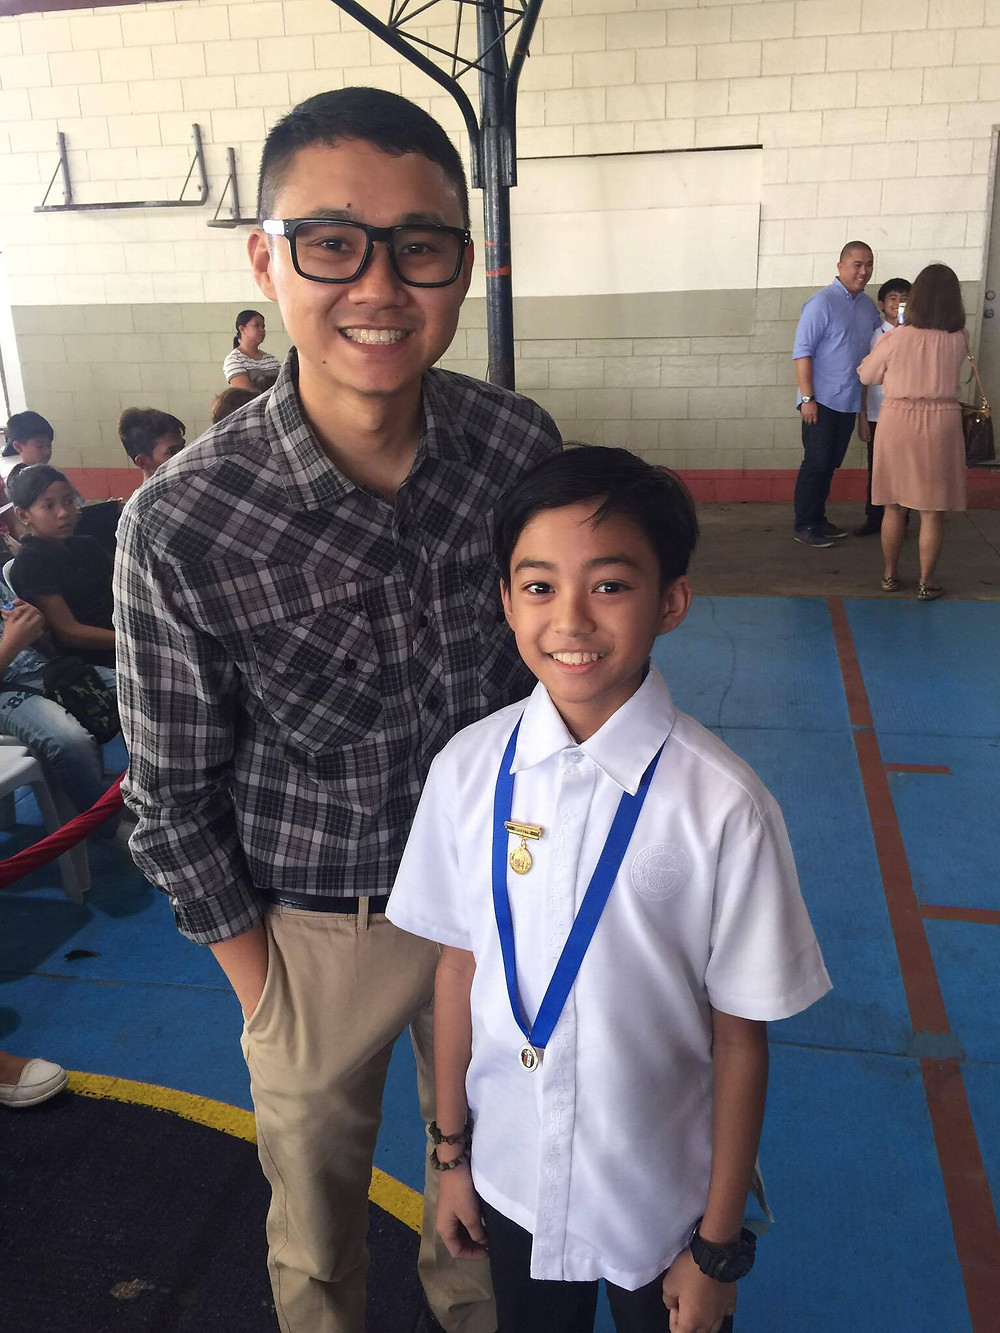 Mio and his Dad, Roman during his Grade School graduation in March 2016